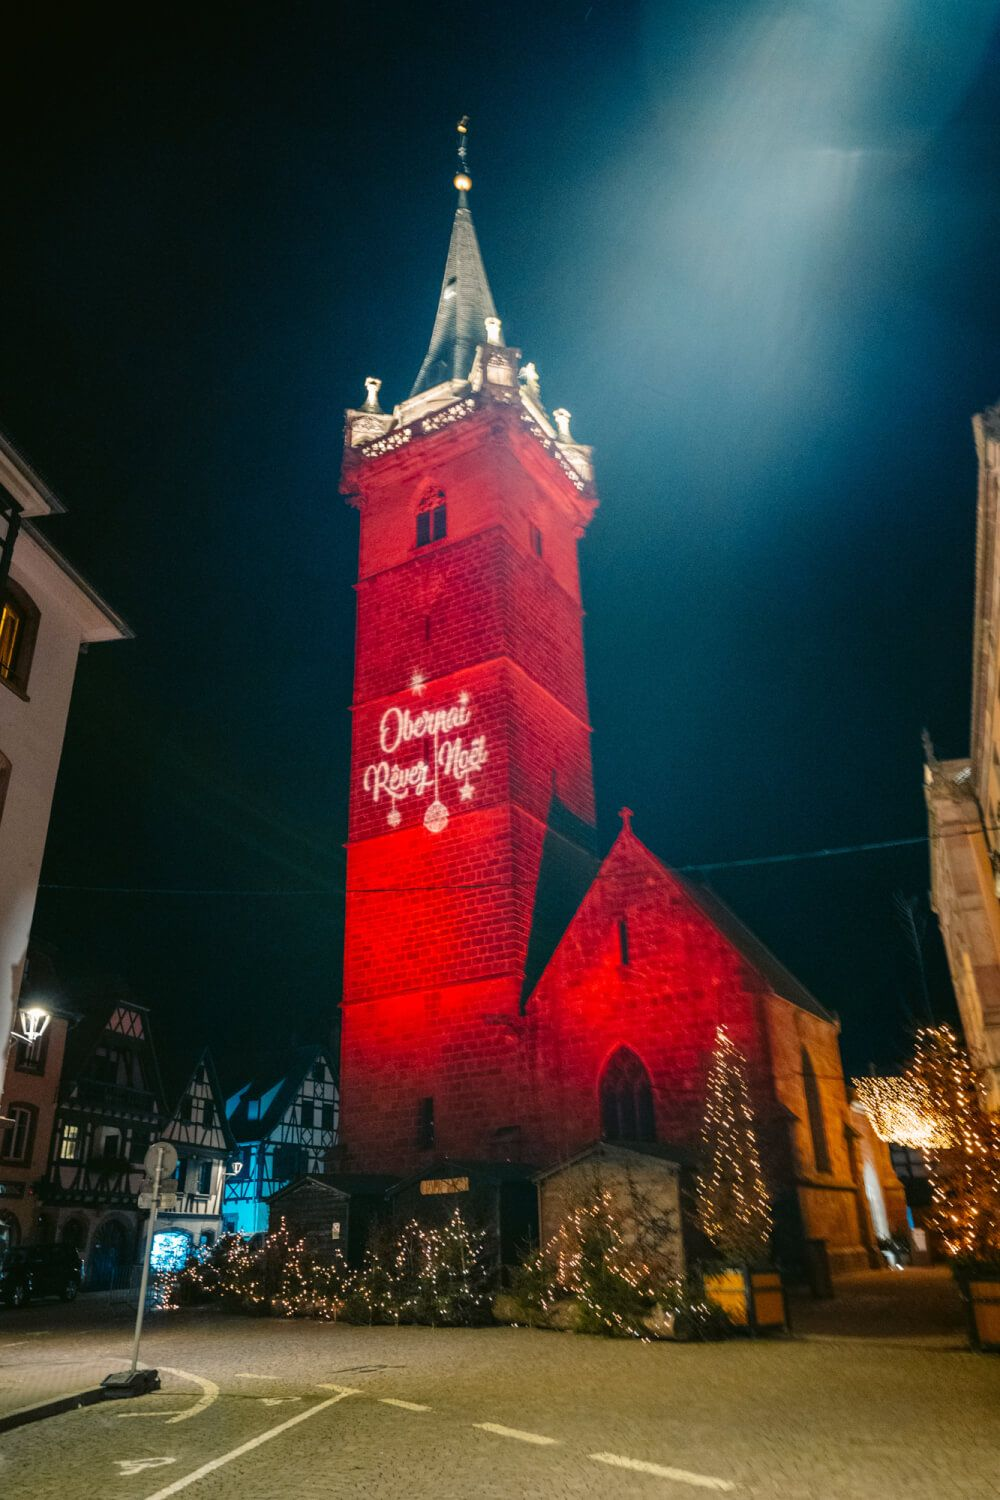 A must-read guide to the magical Christmas Market in Obernai, France. This Xmas market is one of the most underrated Christmas markets in France, so be sure to check it out if you are visiting the Alsace region during Christmas time. Includes beautiful Obernai Photography, a guide on Christmas market locations in Obernai and insider tips! #obernai #france